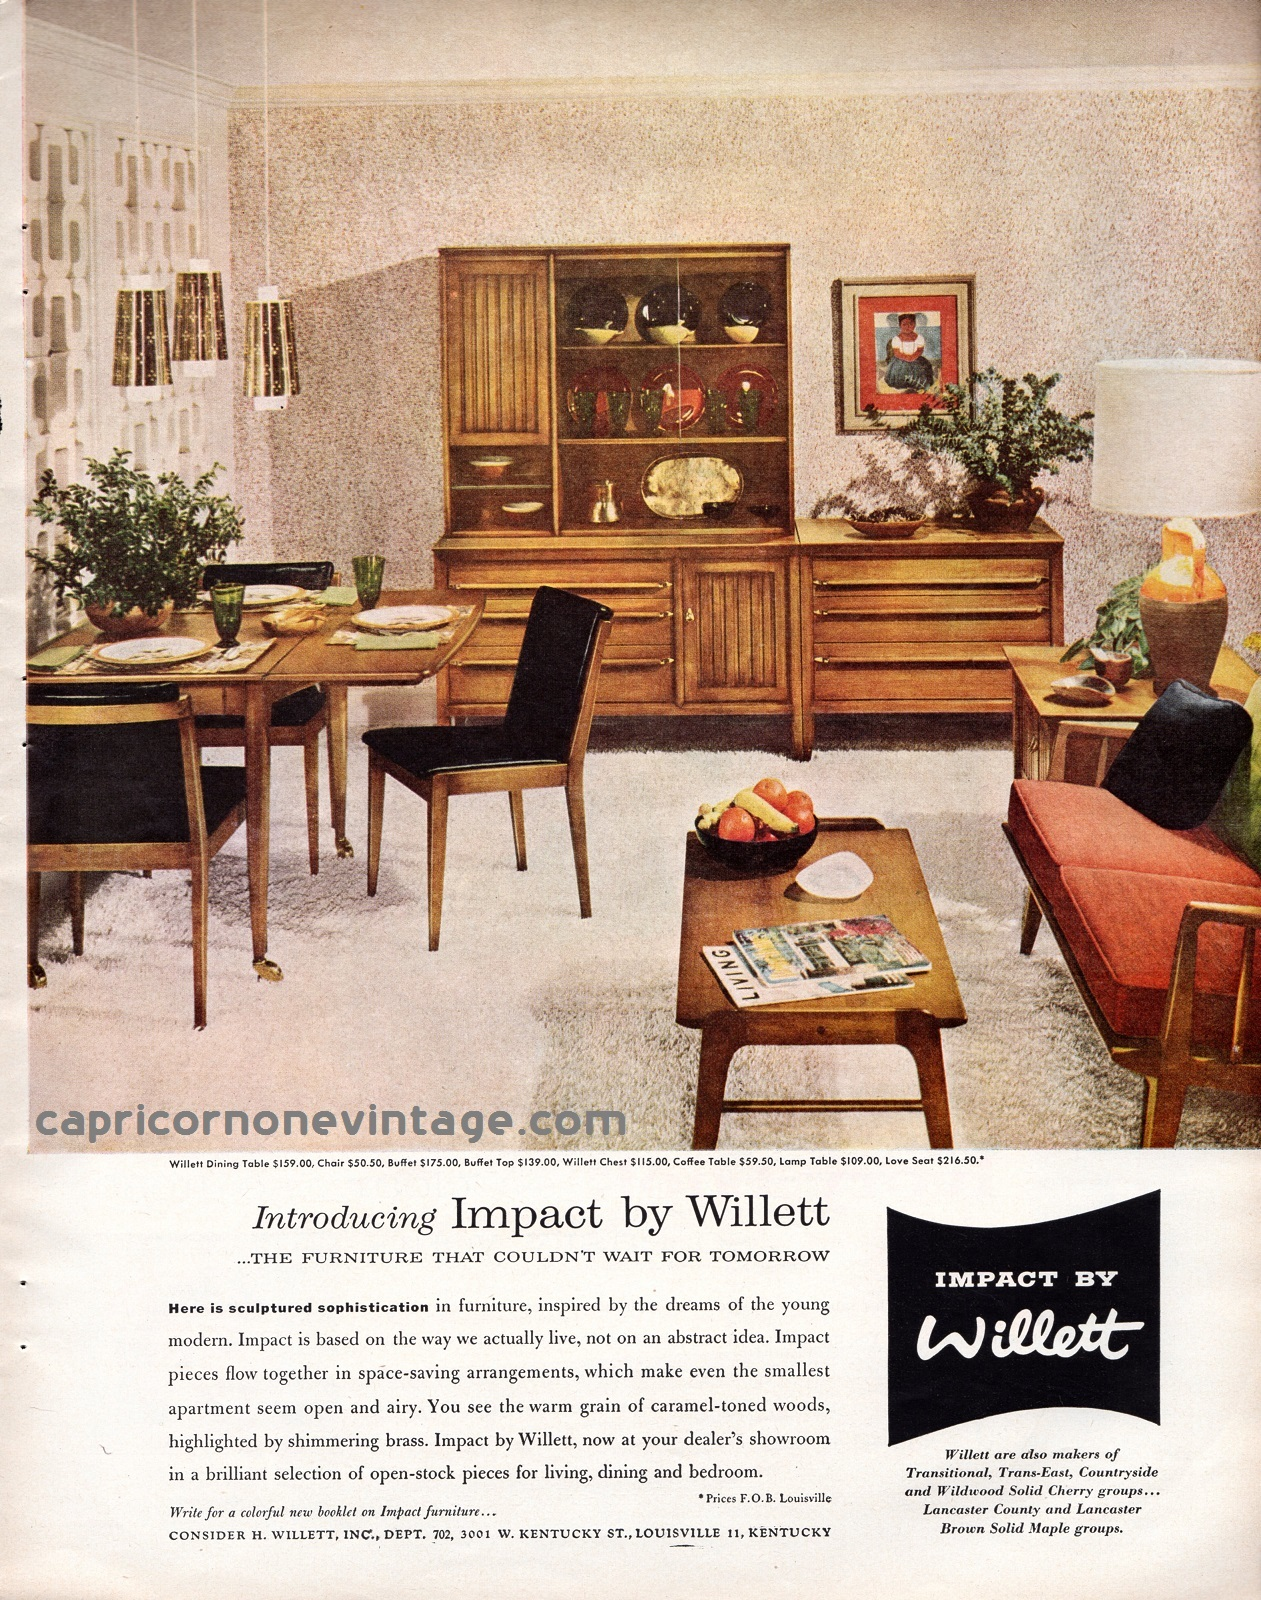 1957 Impact by Willett furniture magazine ad. Introducing Impact by  Willett....THE FURNITURE THAT COULDN'T WAIT FOR TOMRORROW